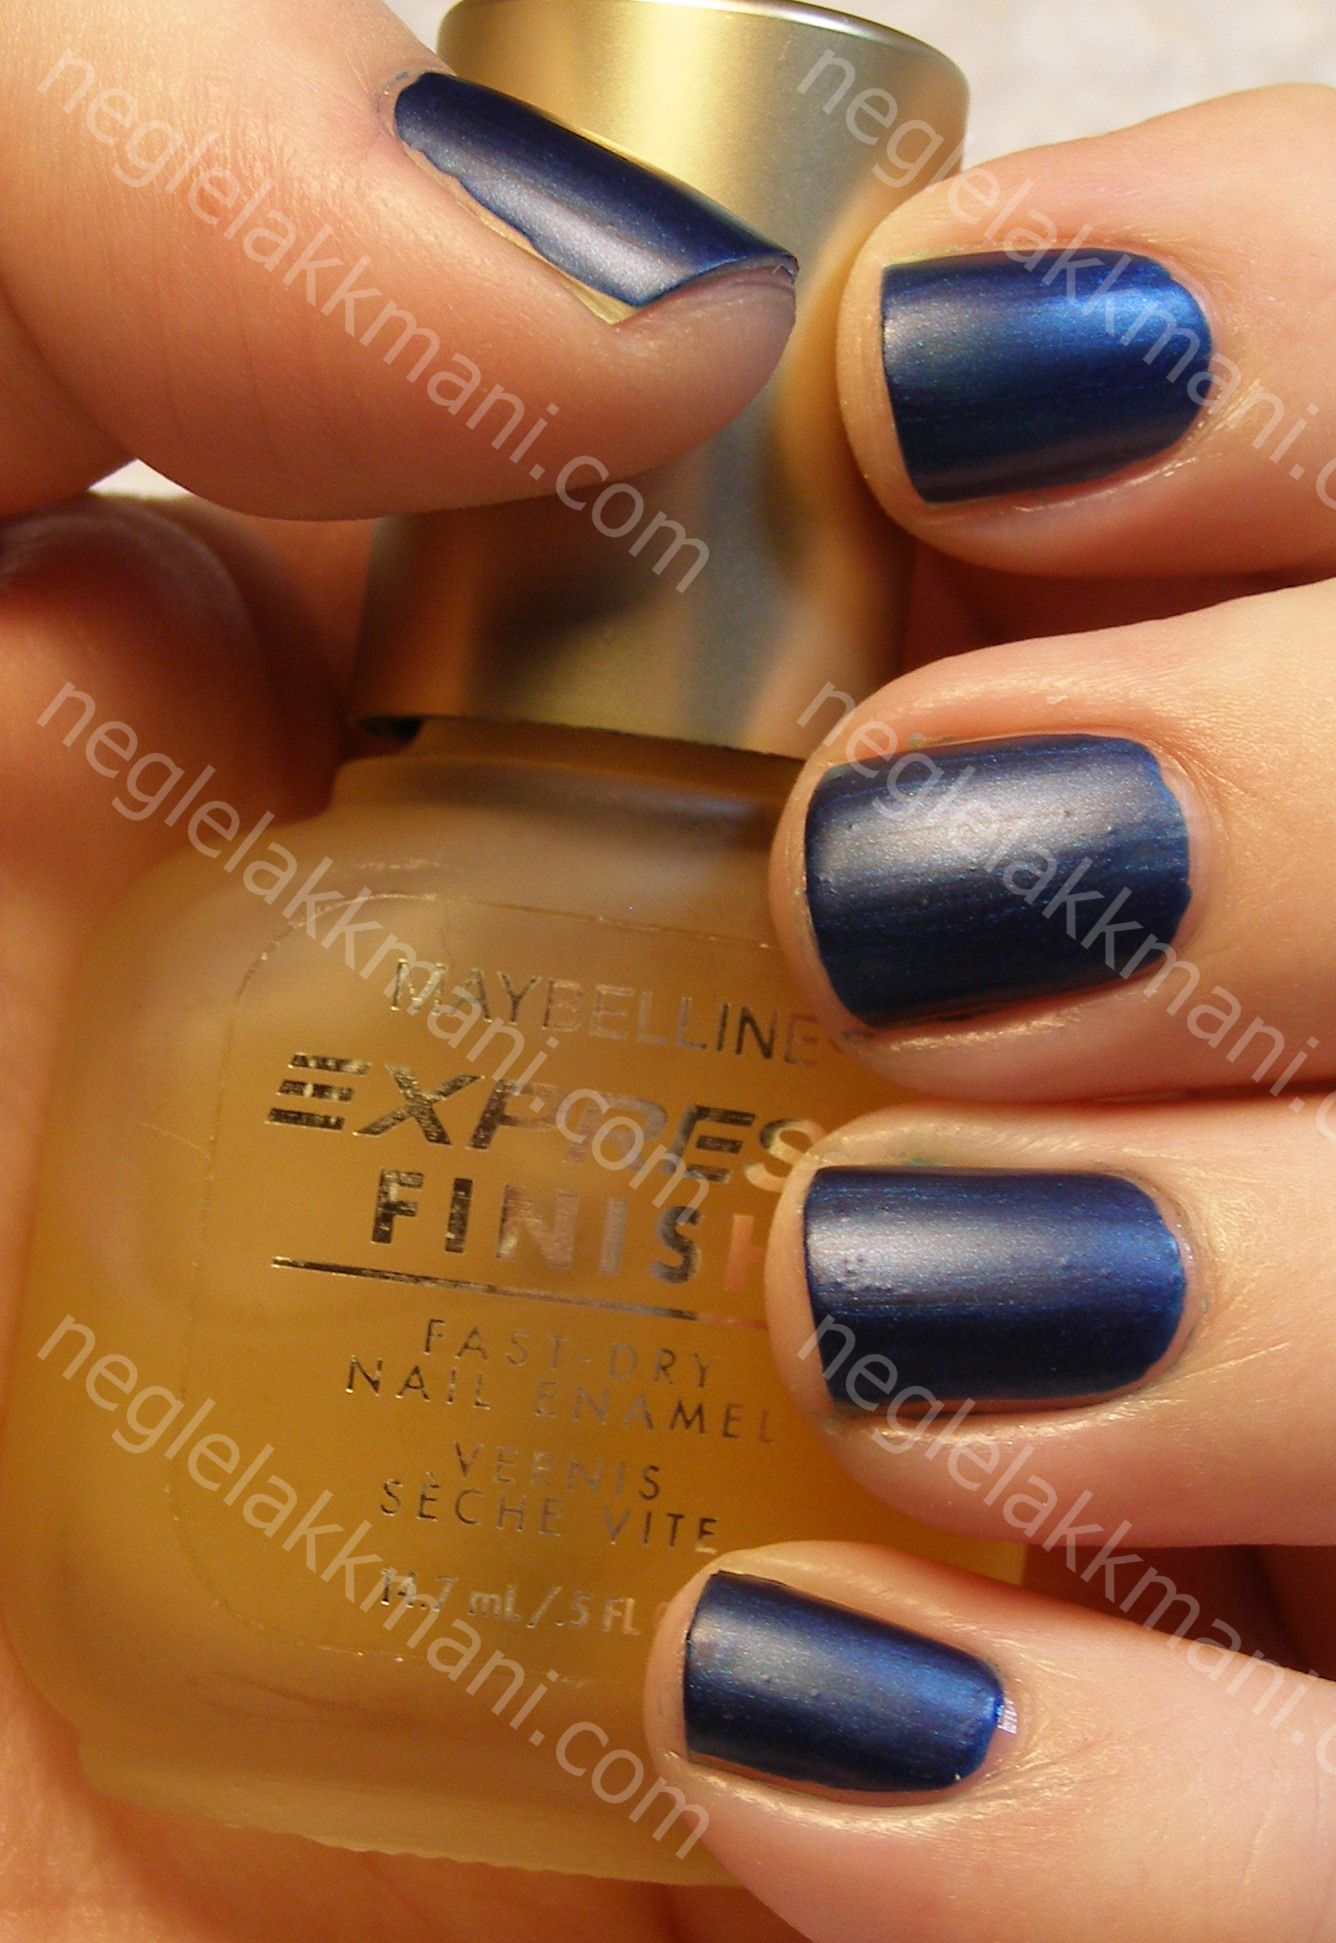 Wet'n Wild Sapphire Blue with Maybelline Matte Maker